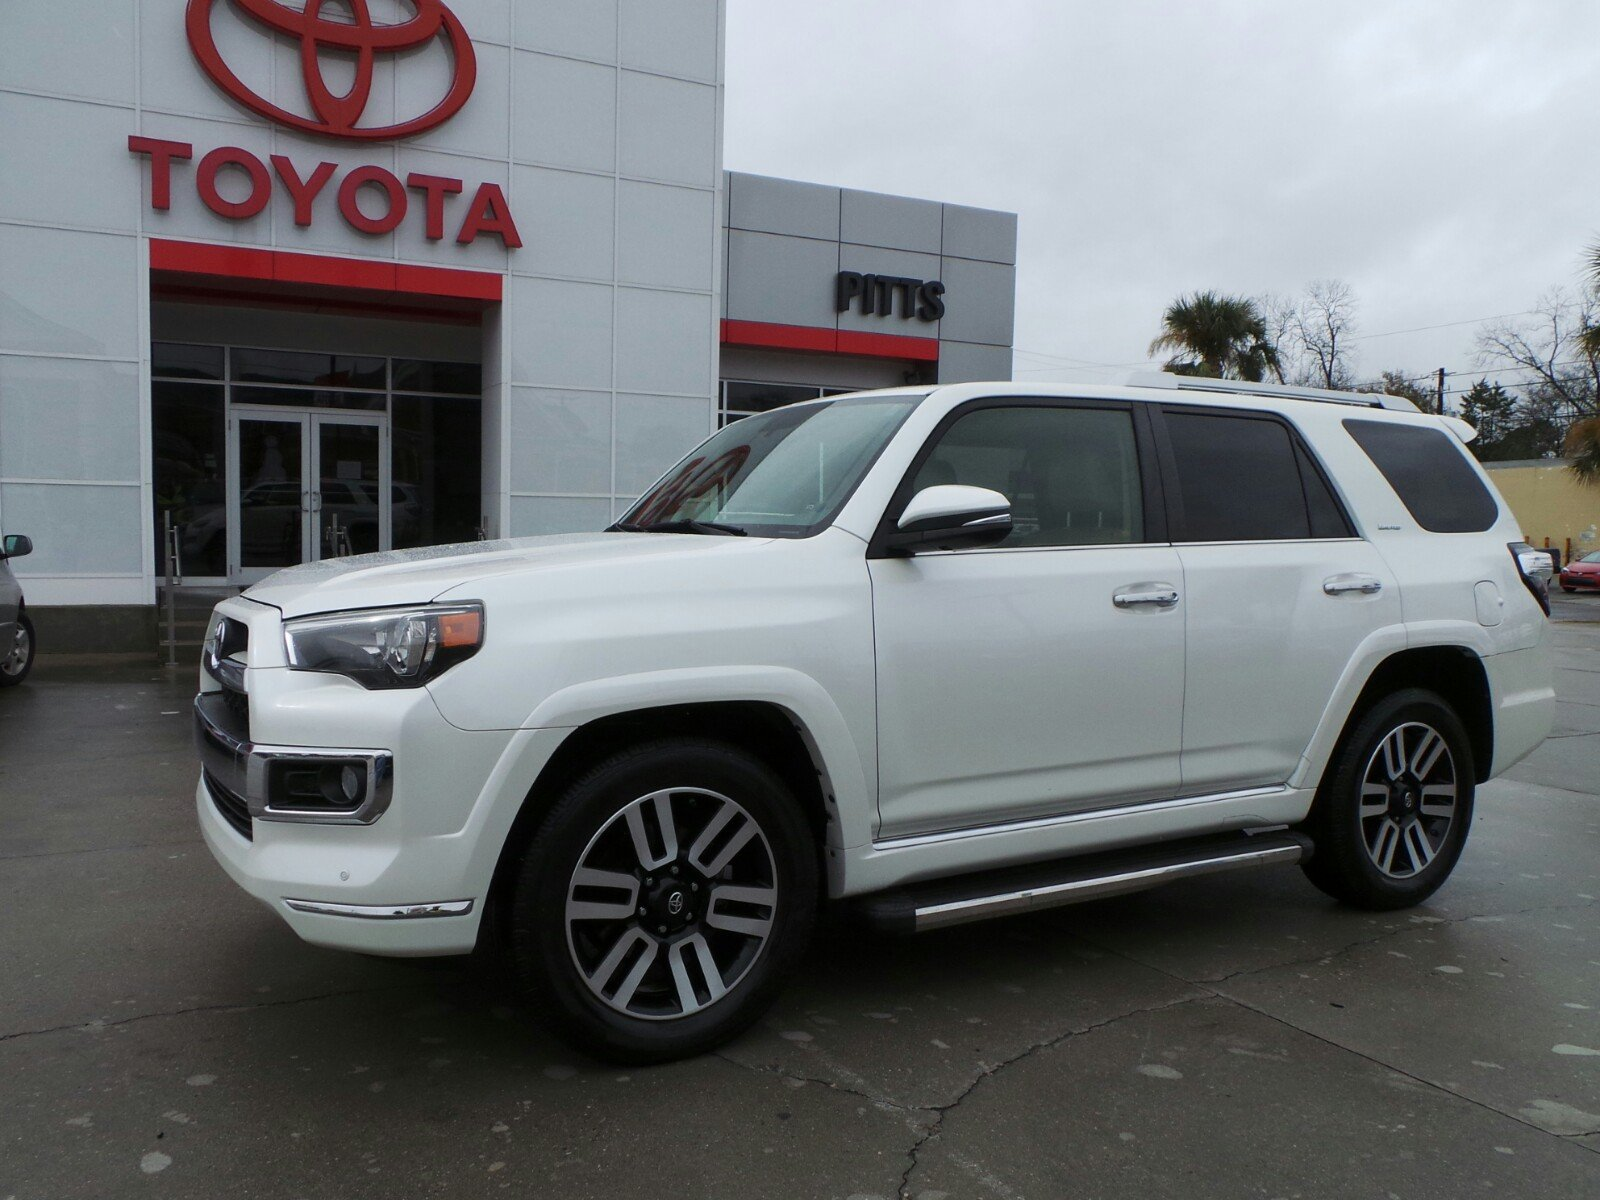 pre-owned 2014 toyota 4runner limited sport utility in dublin #8881a